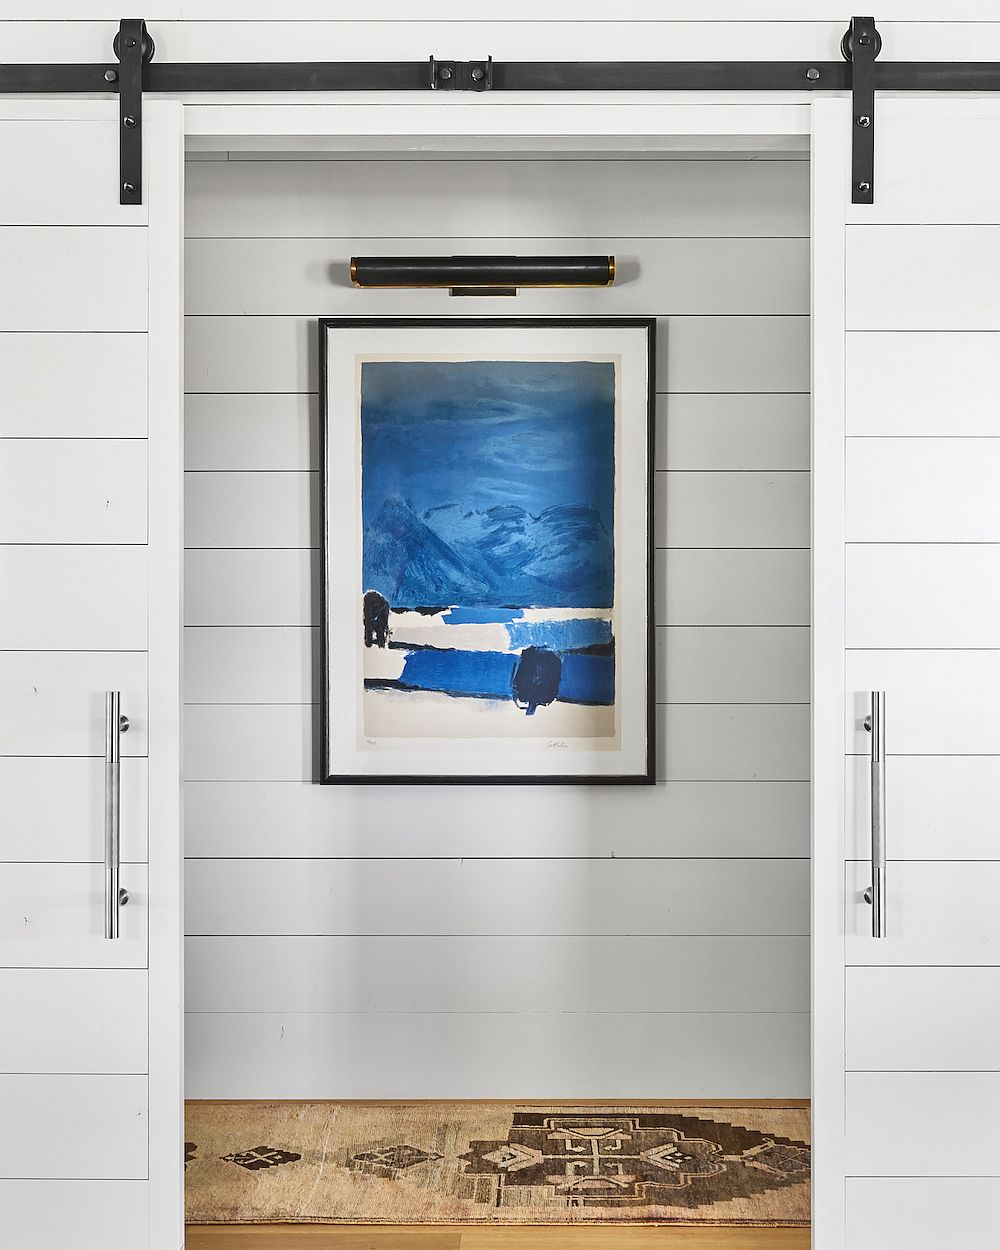 Sliding barn style door for the home preserve its classic ranch style